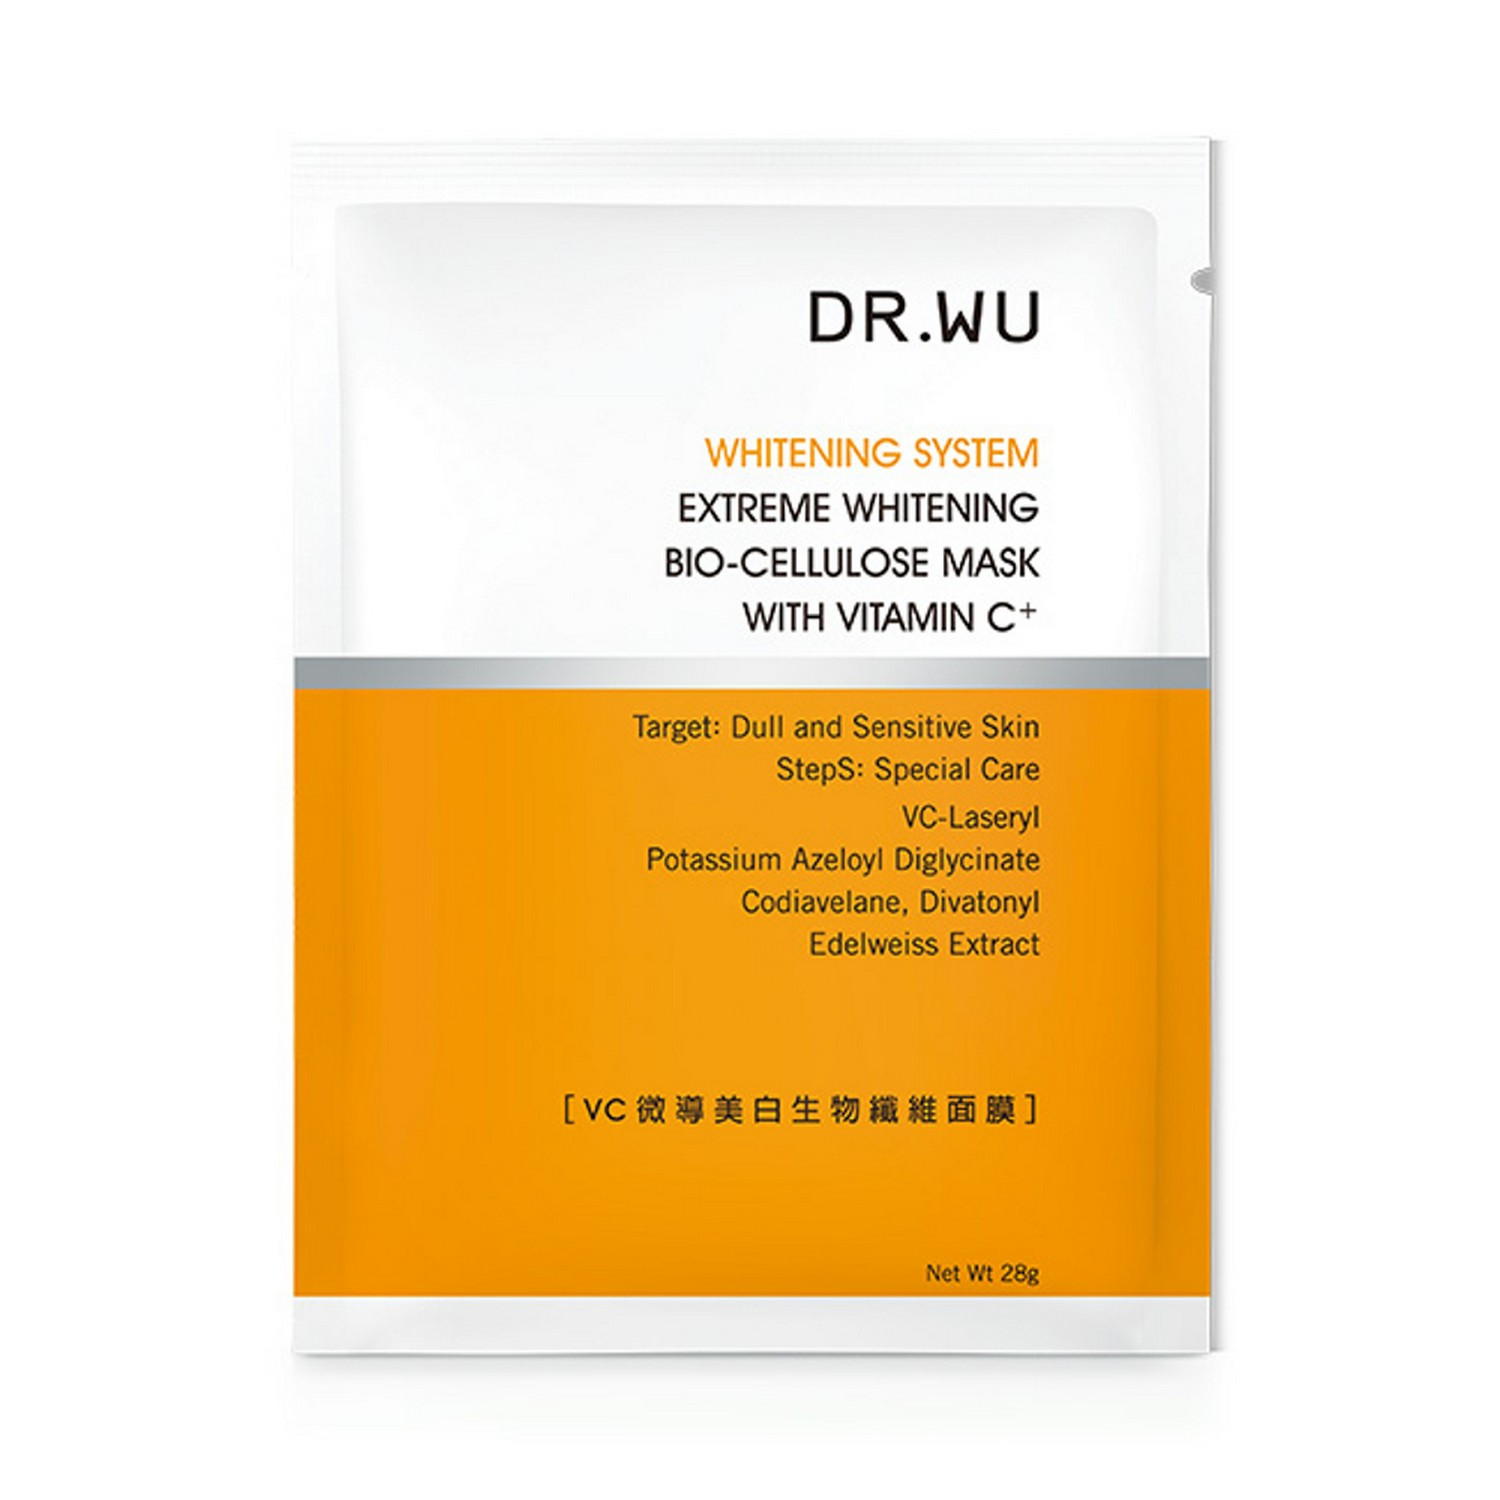 Buy Dr. Wu EXTREME WHITENING BIO-CELLULOSE MASK WITH VITAMIN C+ (3 pcs)